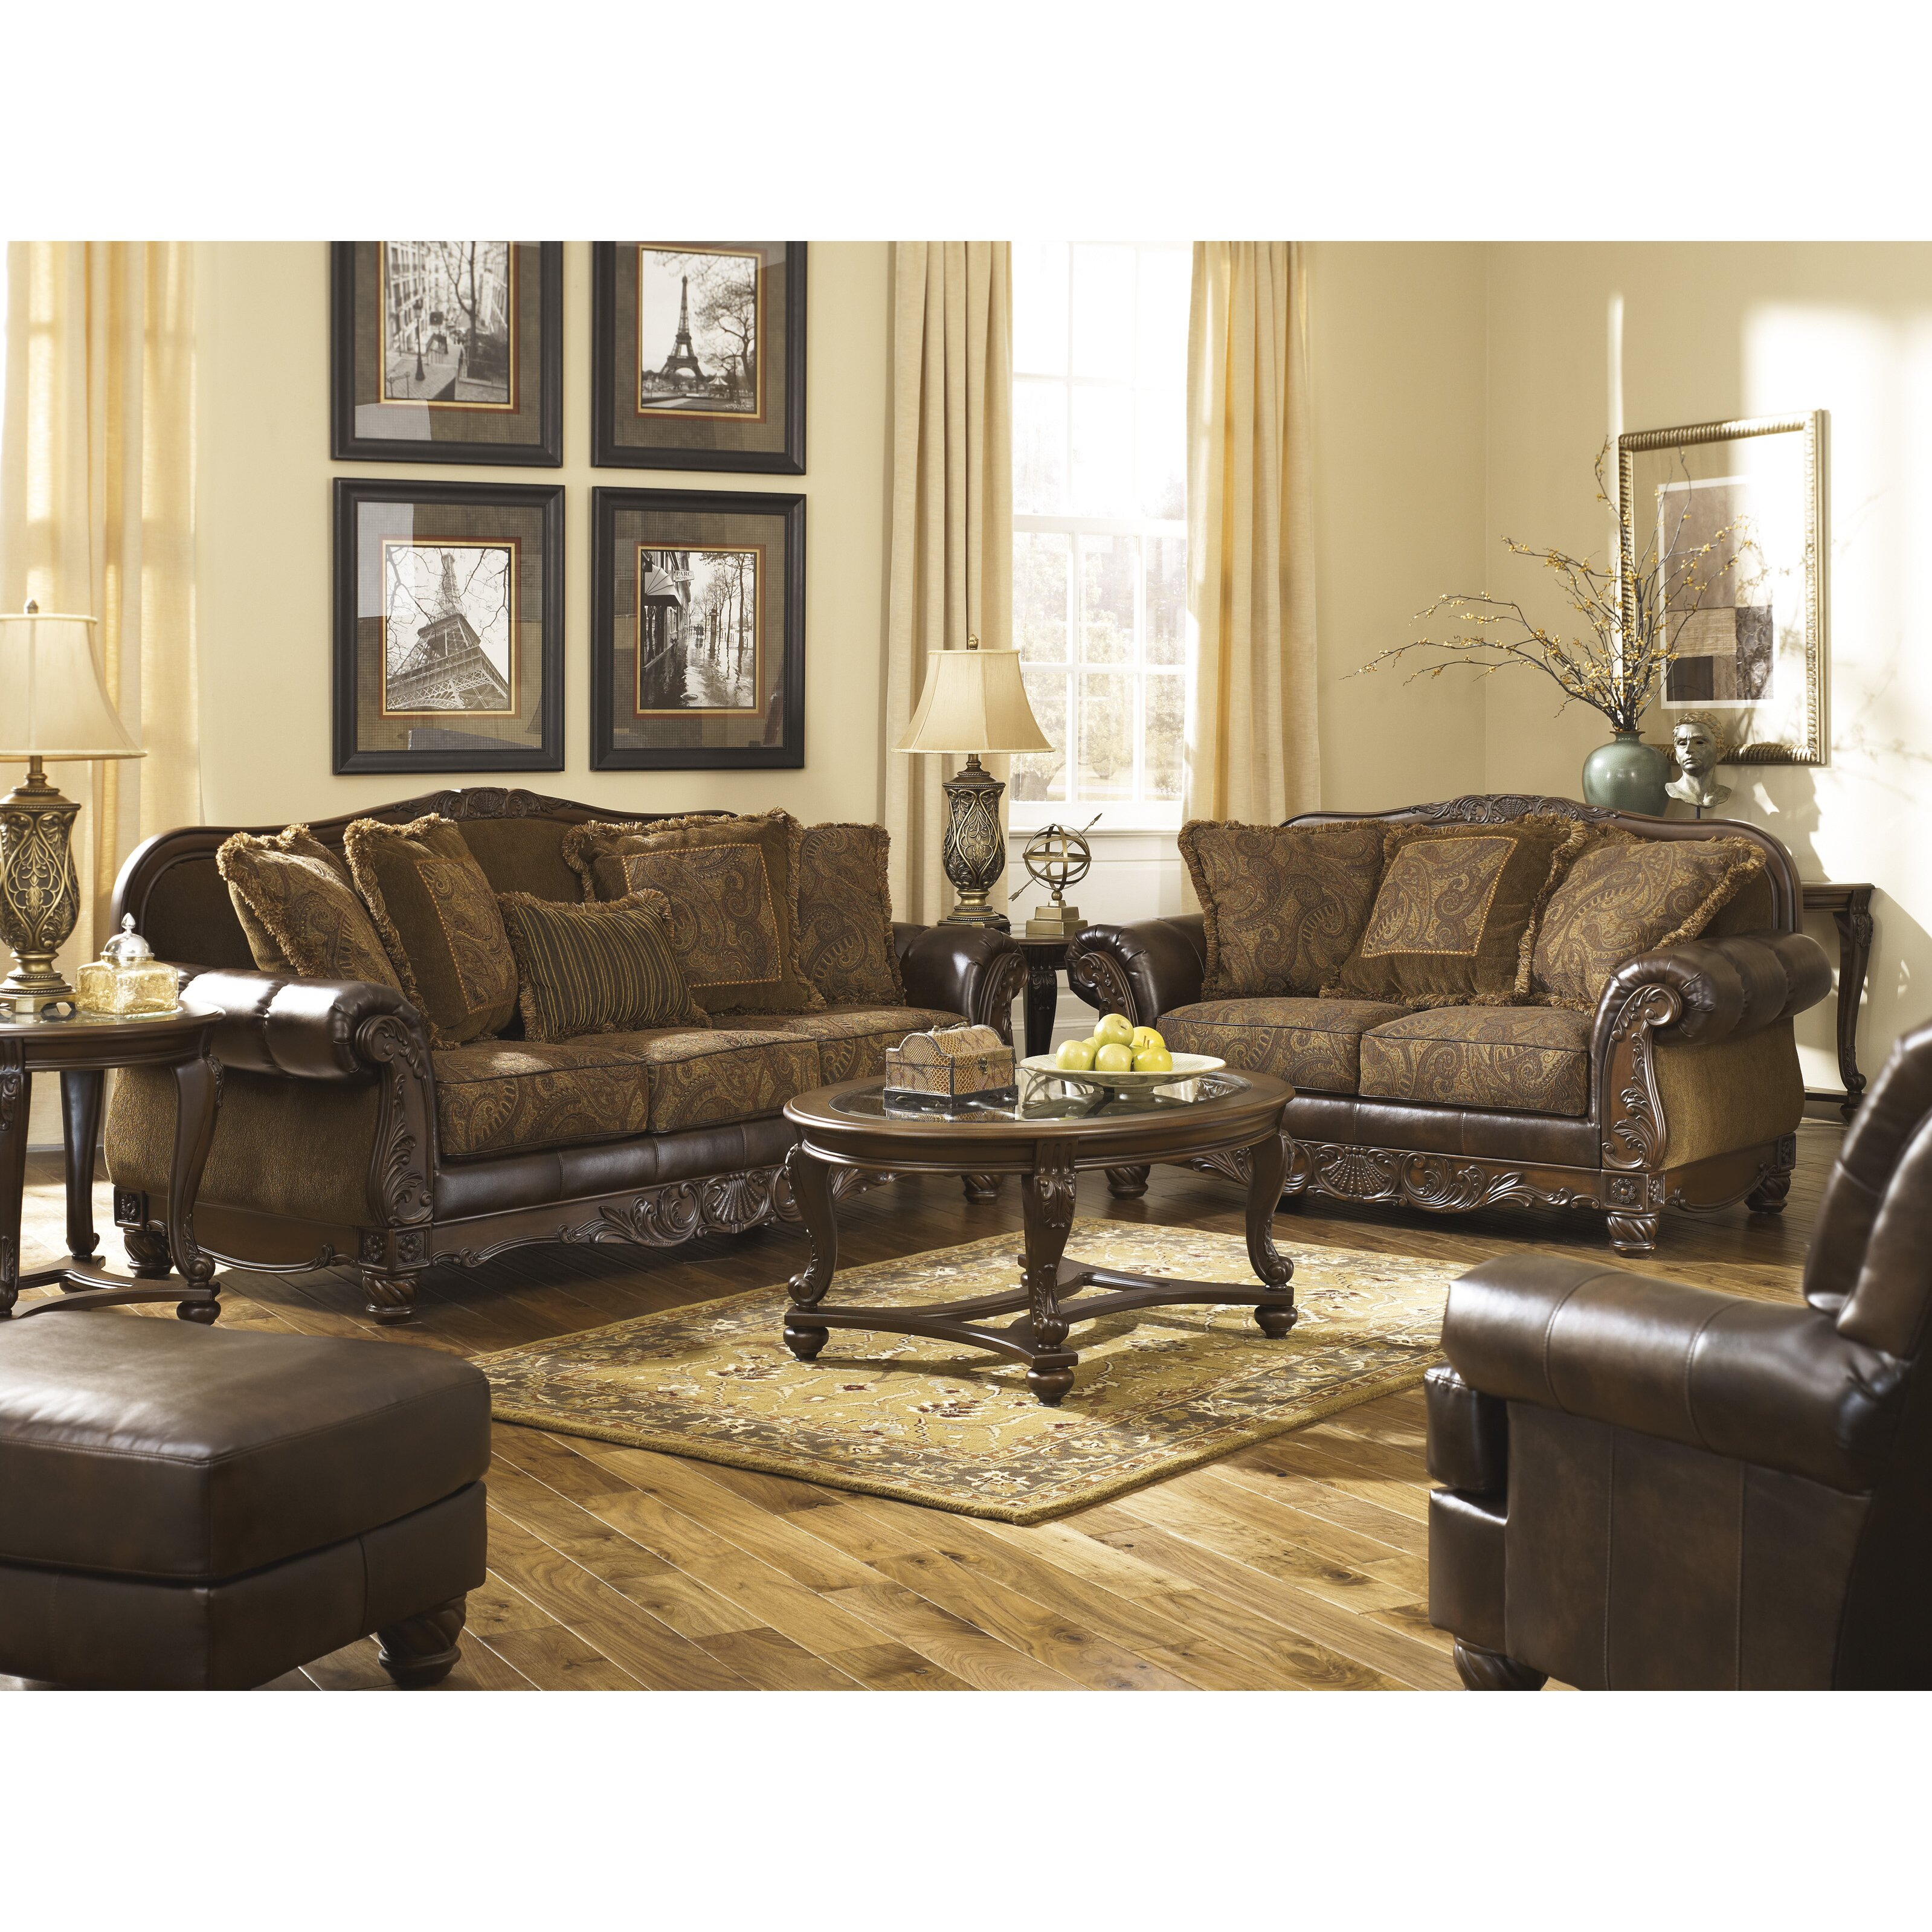 Signature Design By Ashley Newbern Living Room Collection Reviews Wayfair